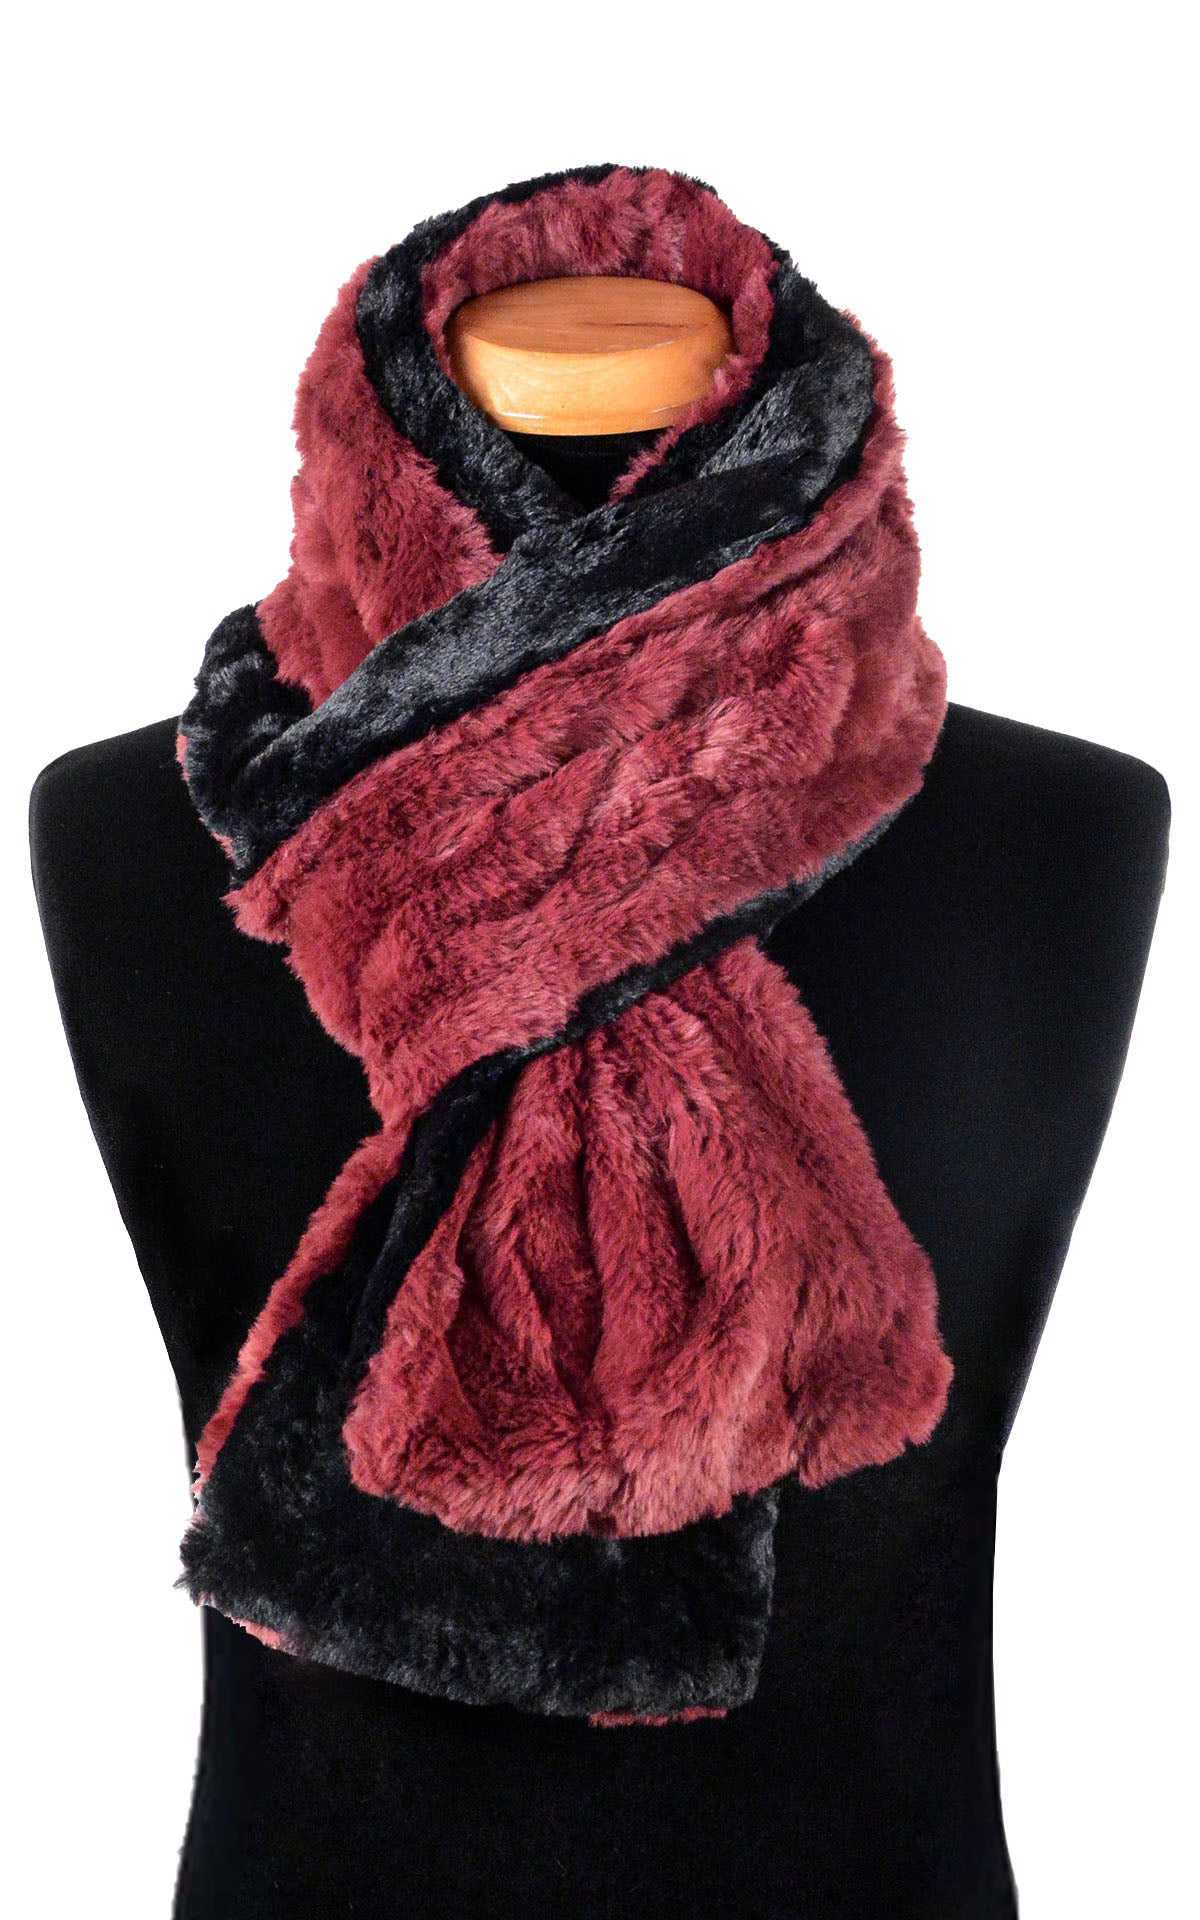 Men's Classic Scarf - Two-Tone, Luxury Faux Fur in Cranberry Creek (Standard Size Only - Limited Availability)